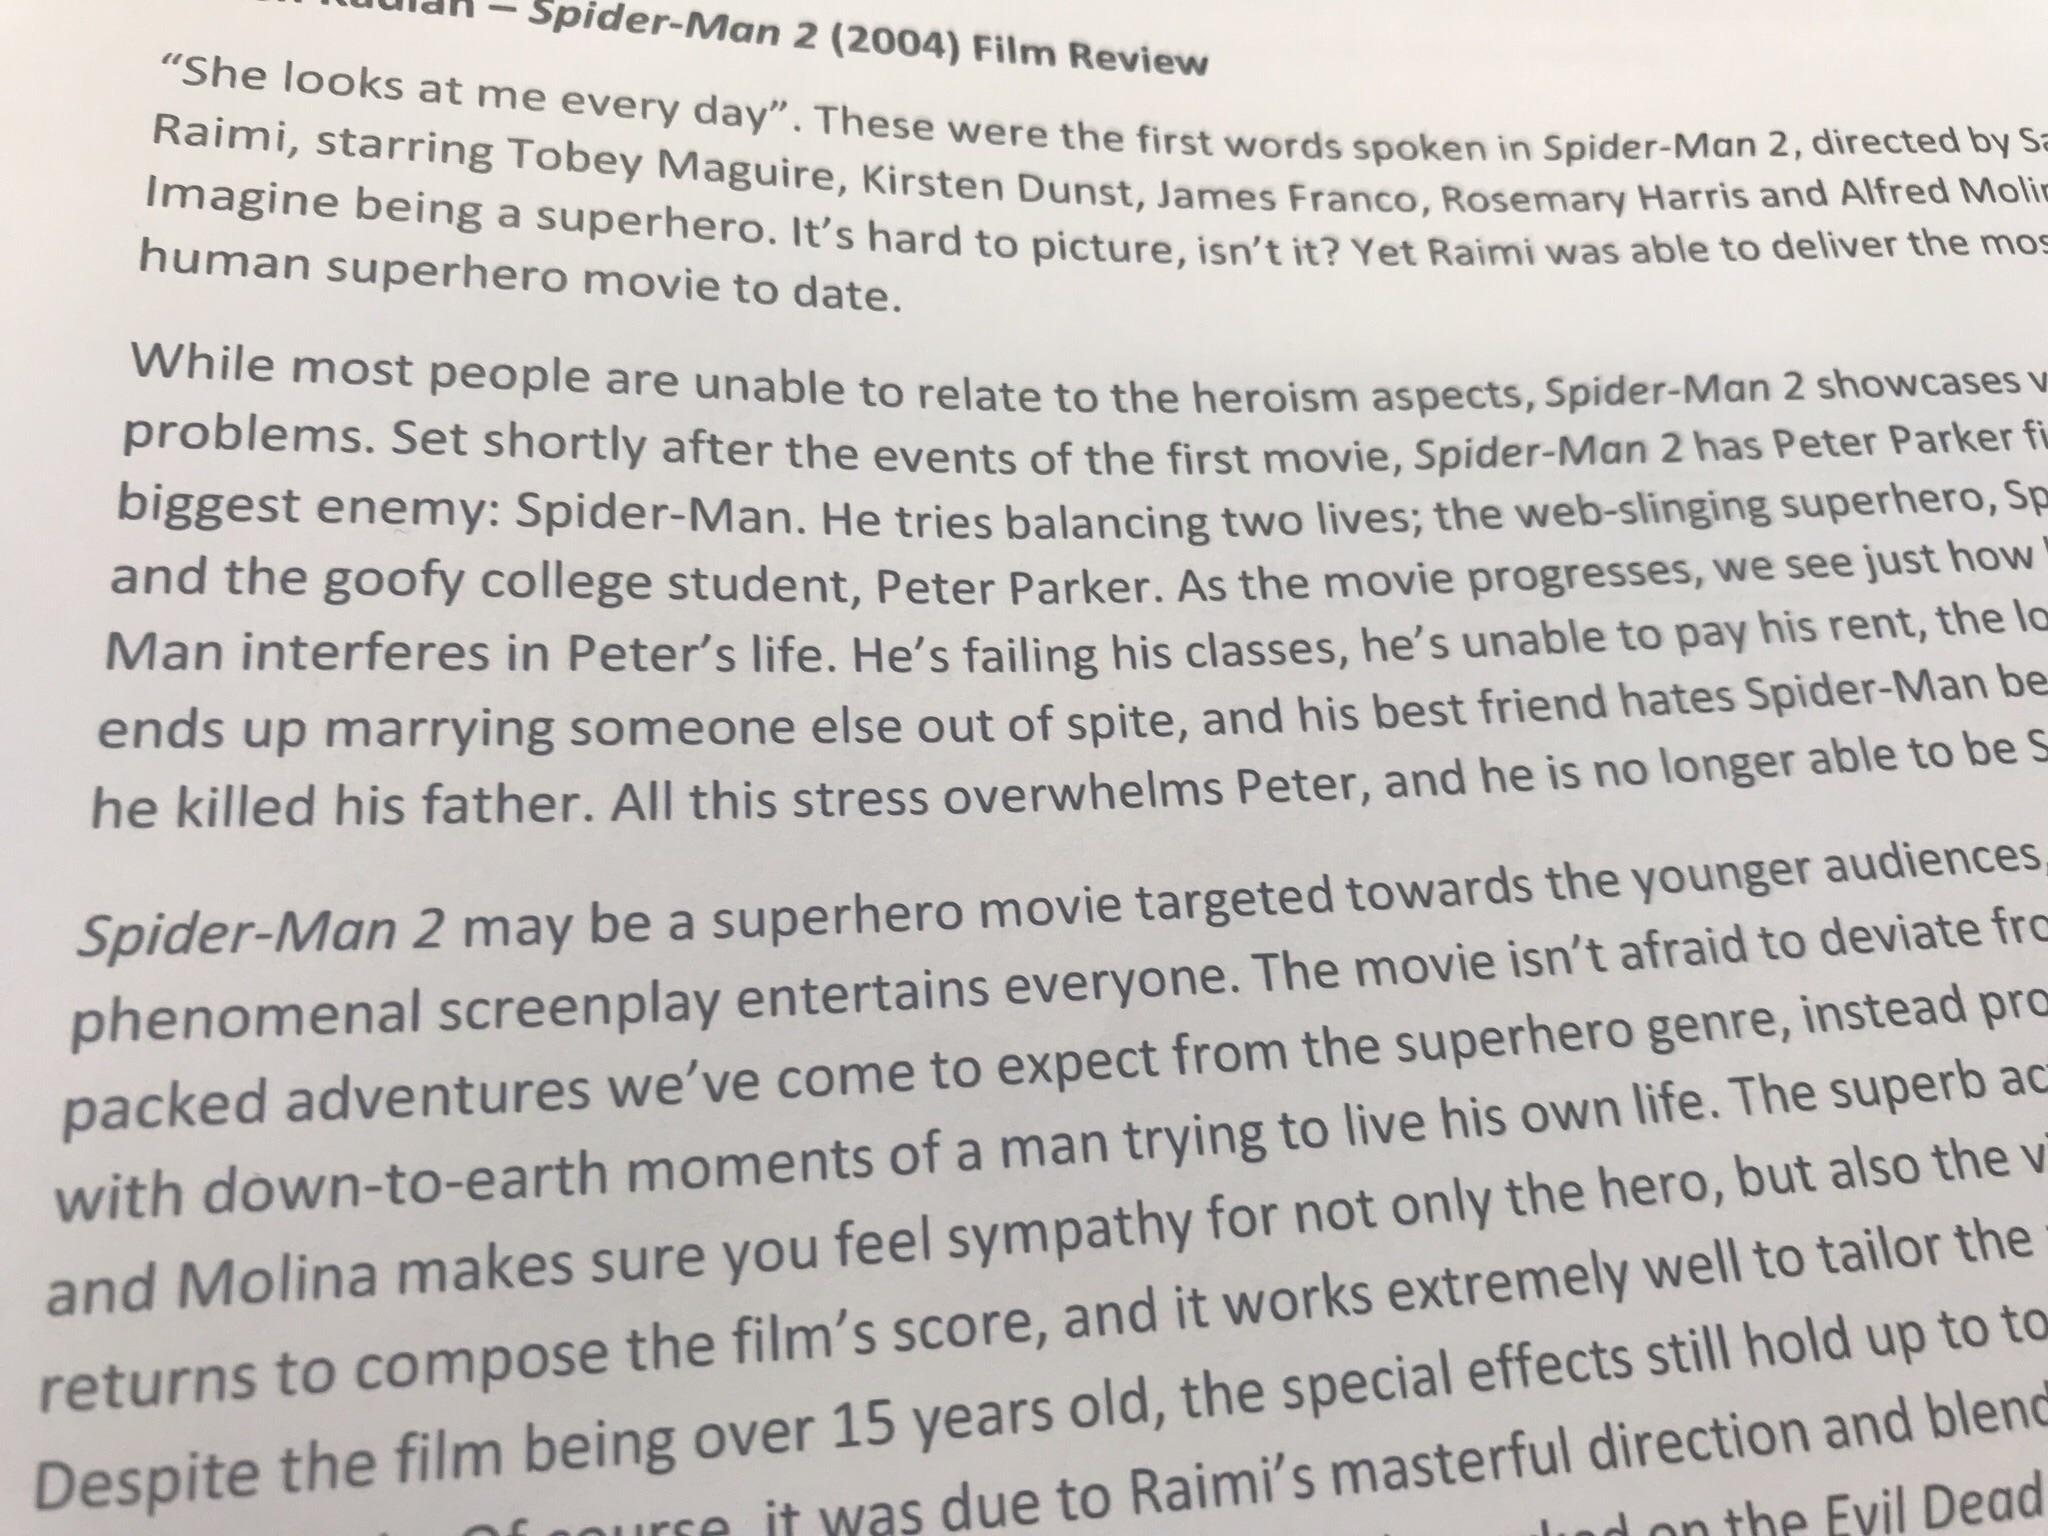 Movie Film Review In English